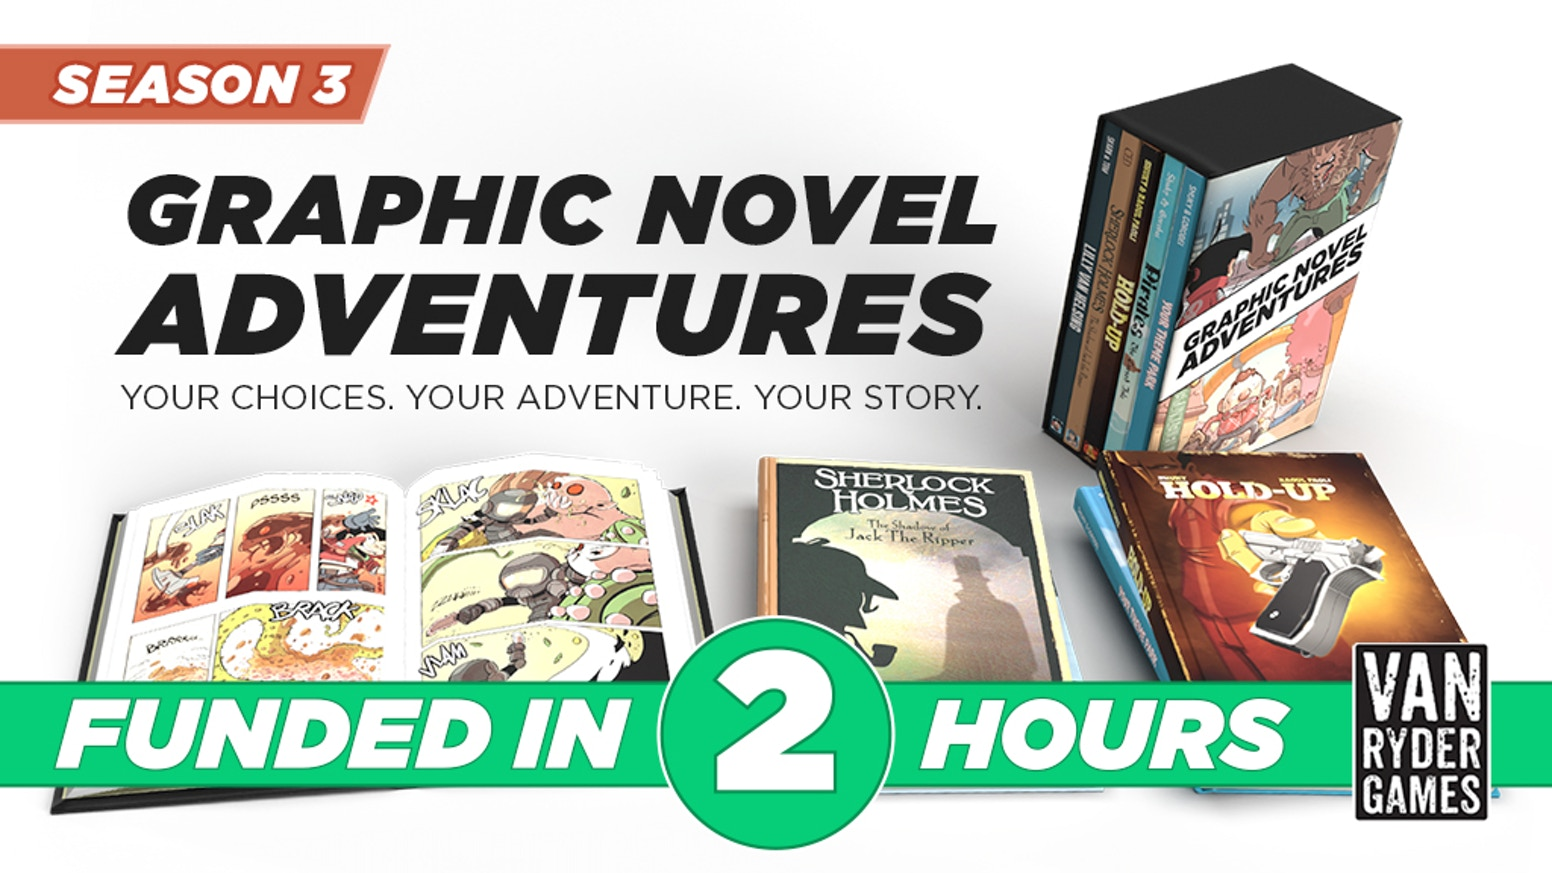 FIVE ALL NEW books in the Graphic Novel Adventures line of gamebooks. Your Choices. Your Adventure. Your Story.